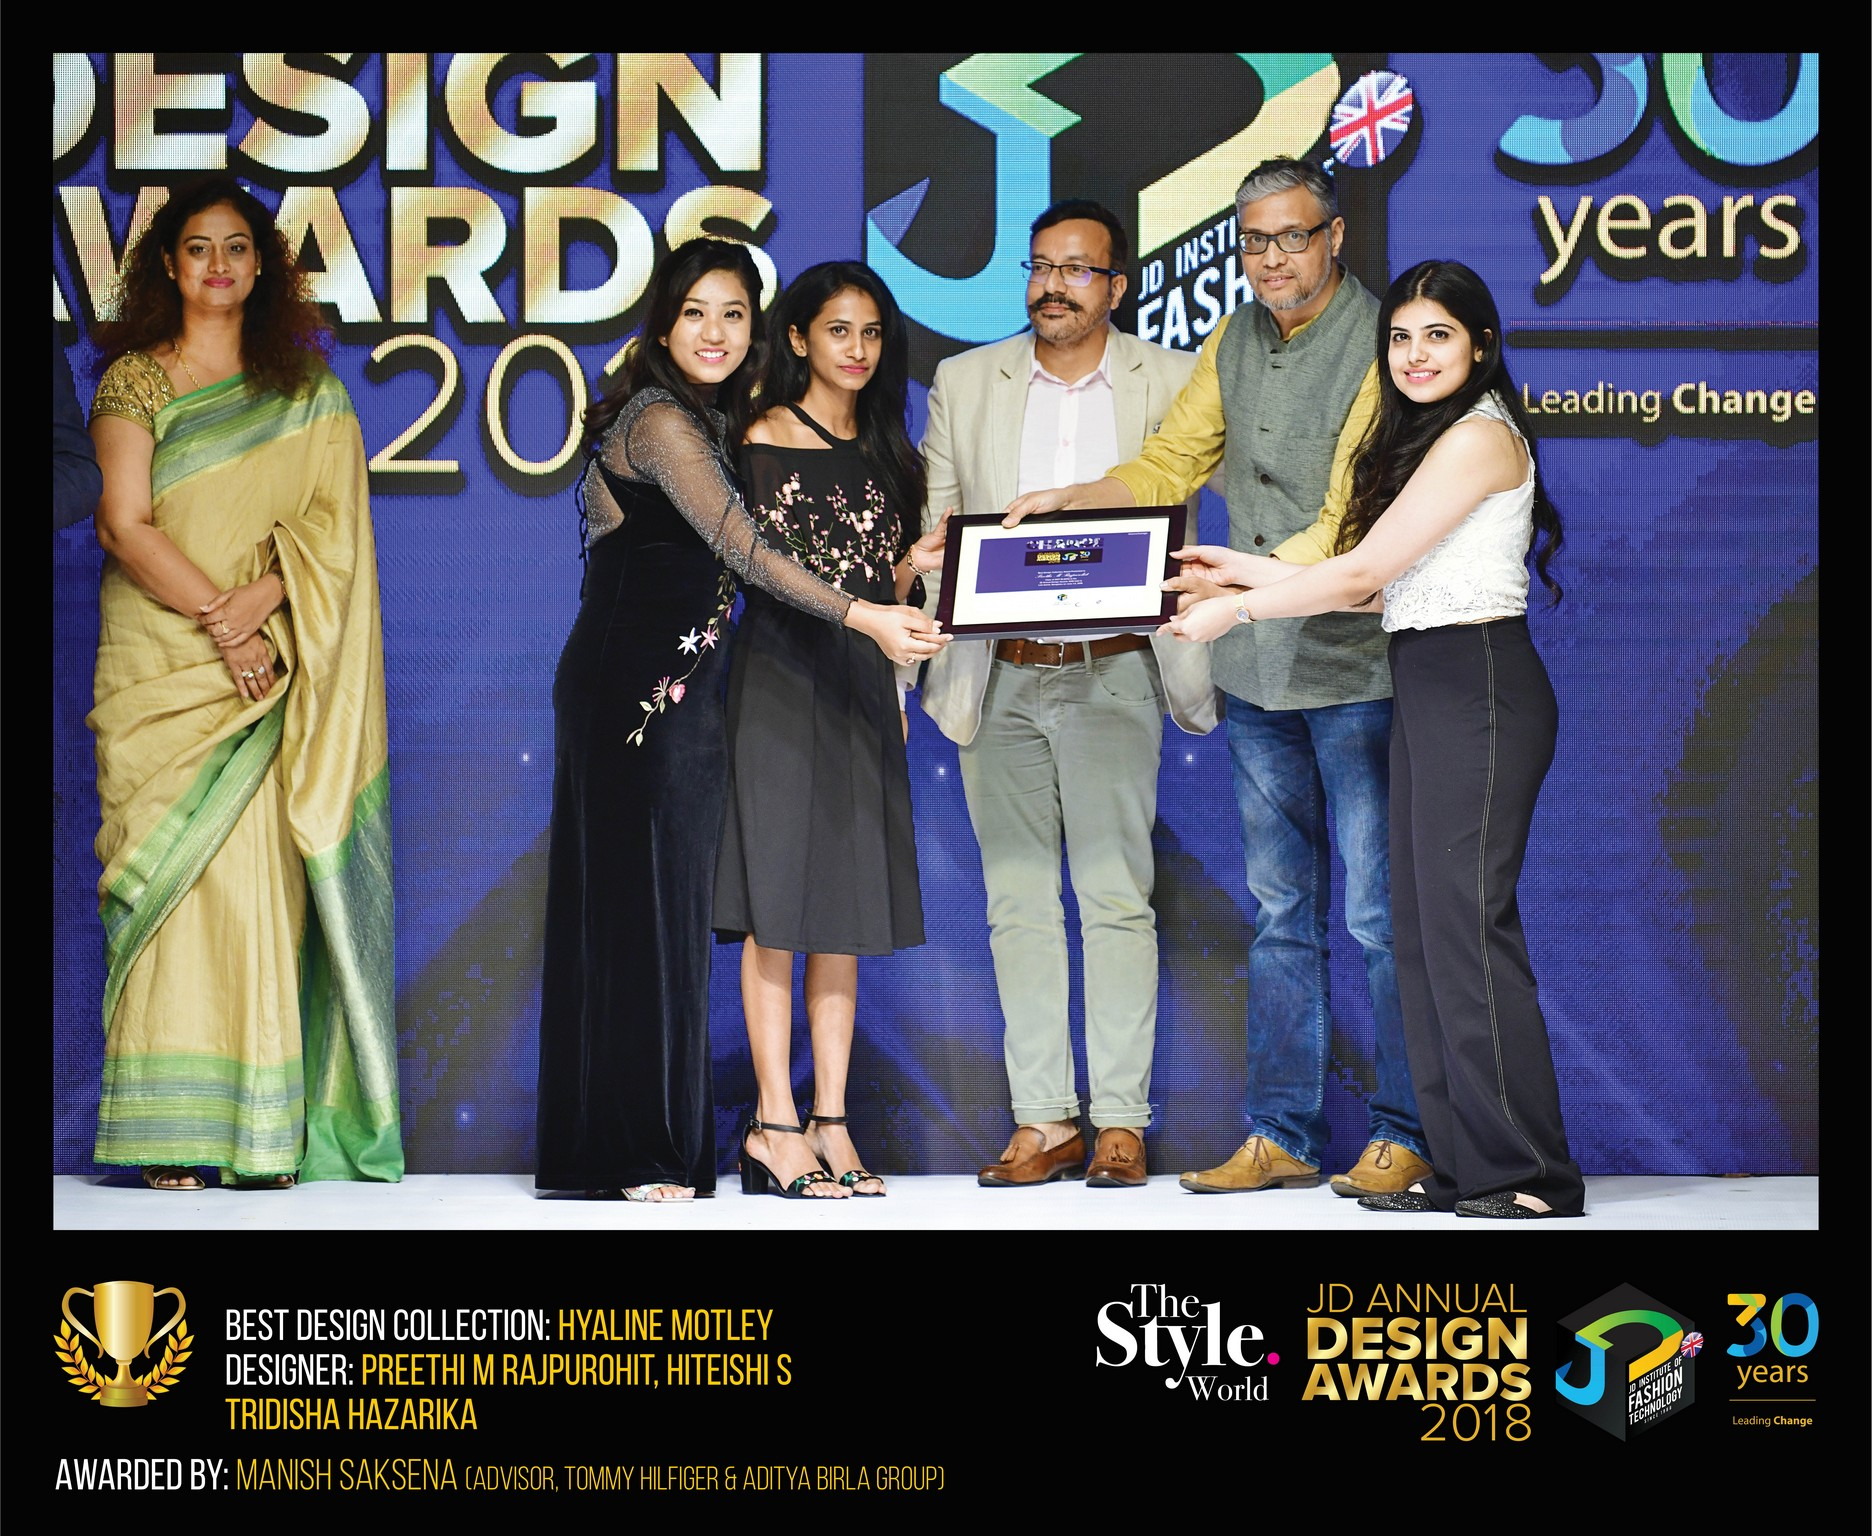 Hyaline Motley – Change – JD Annual Design Awards 2018 | Designer: Preethi, Tridisha and Heitishi from DFD March 2017 | Photography : Jerin Nath (@jerin_nath) hyaline motley Hyaline Motley – Change – JD Annual Design Awards 2018 28